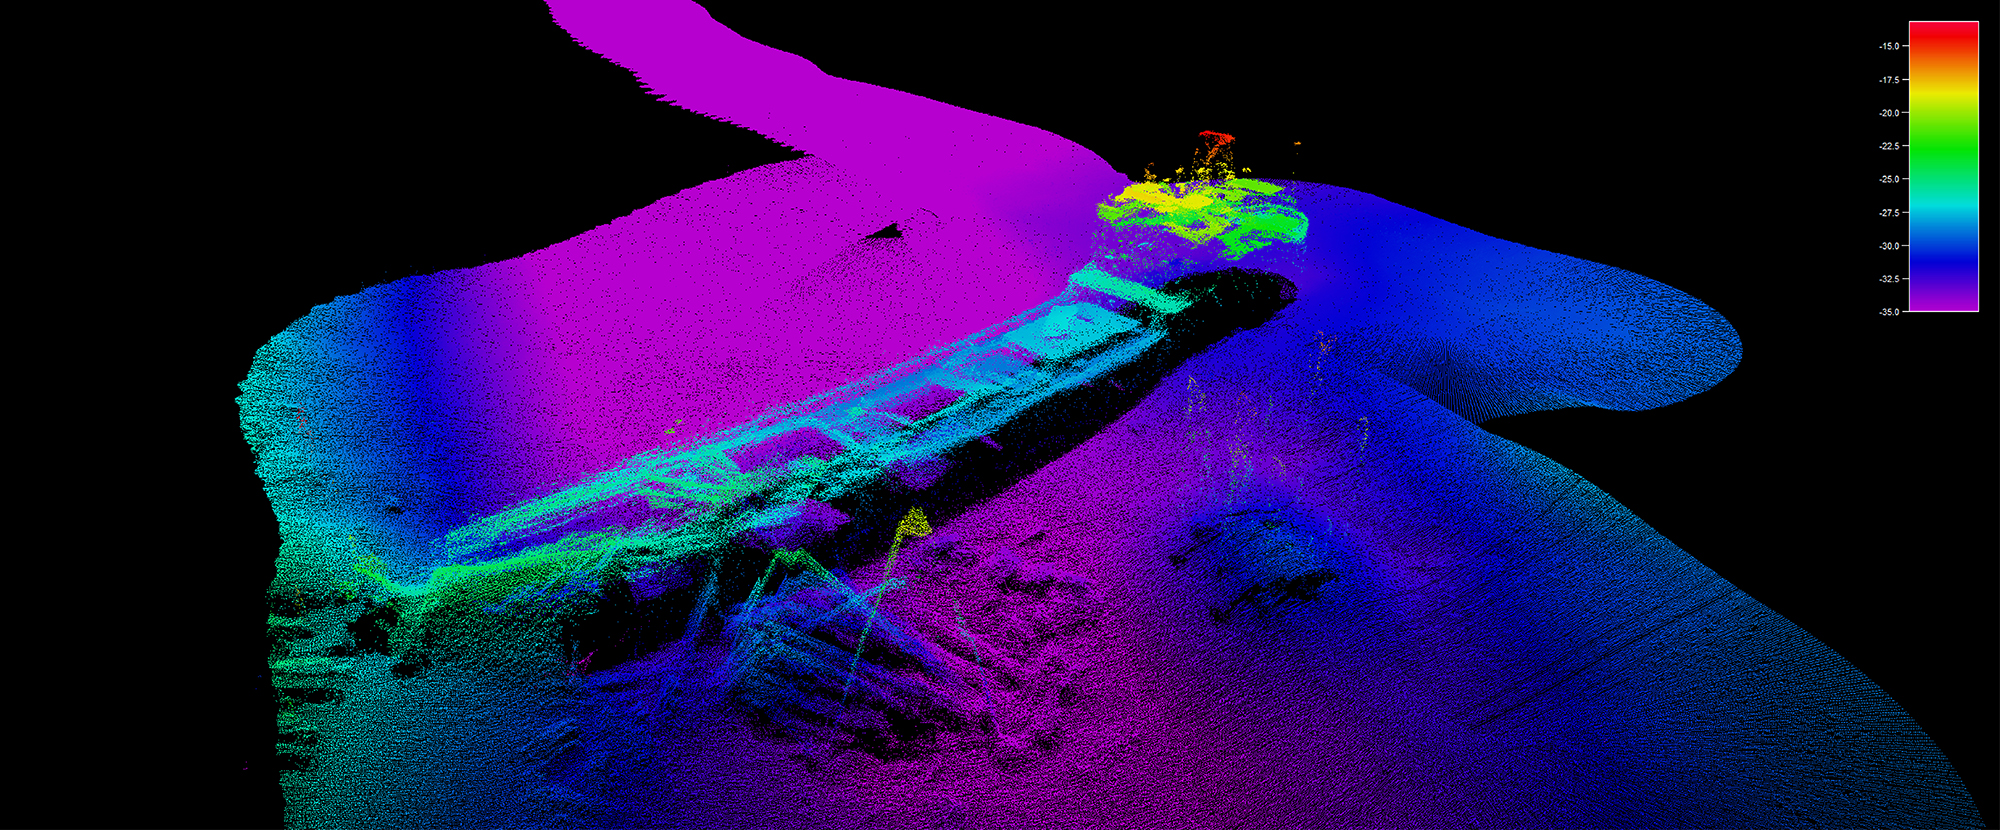 Shipwreck image developed using an echosounder